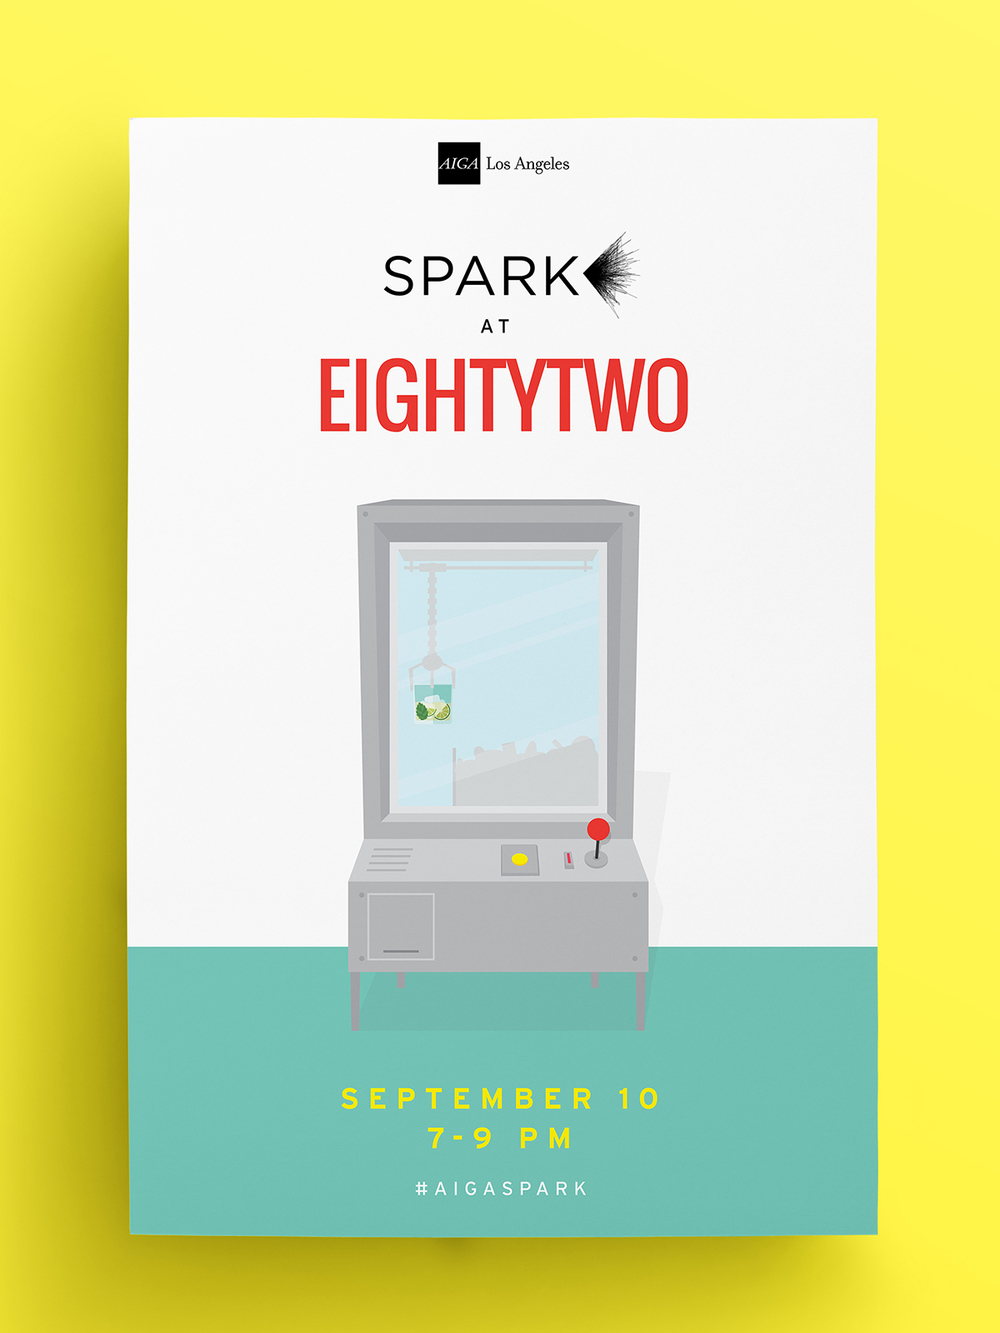 Spark at Eighty Two